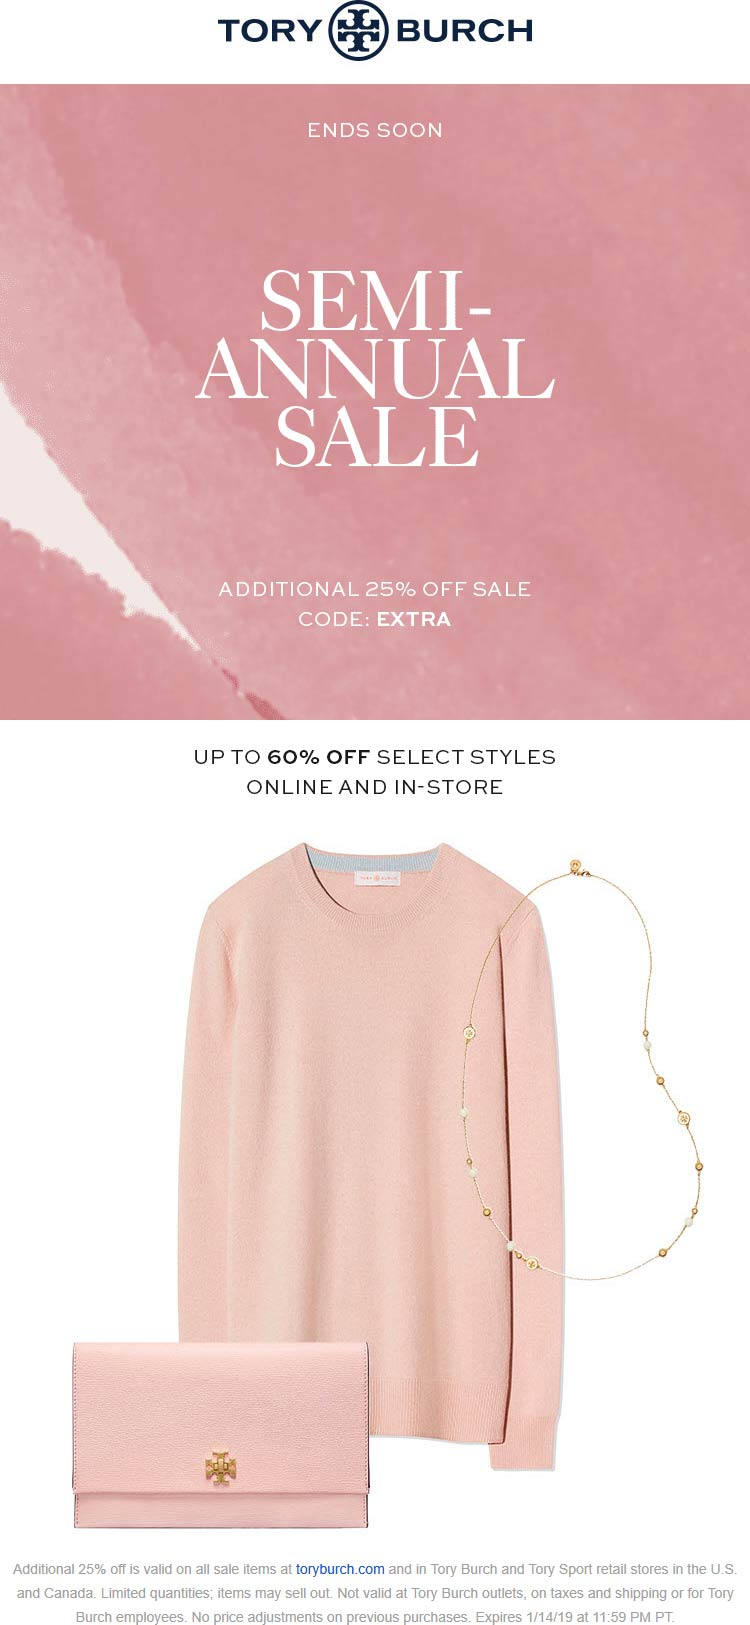 Tory Burch Coupon May 2019 Extra 25% off sale items at Tory Burch, or online via promo code EXTRA